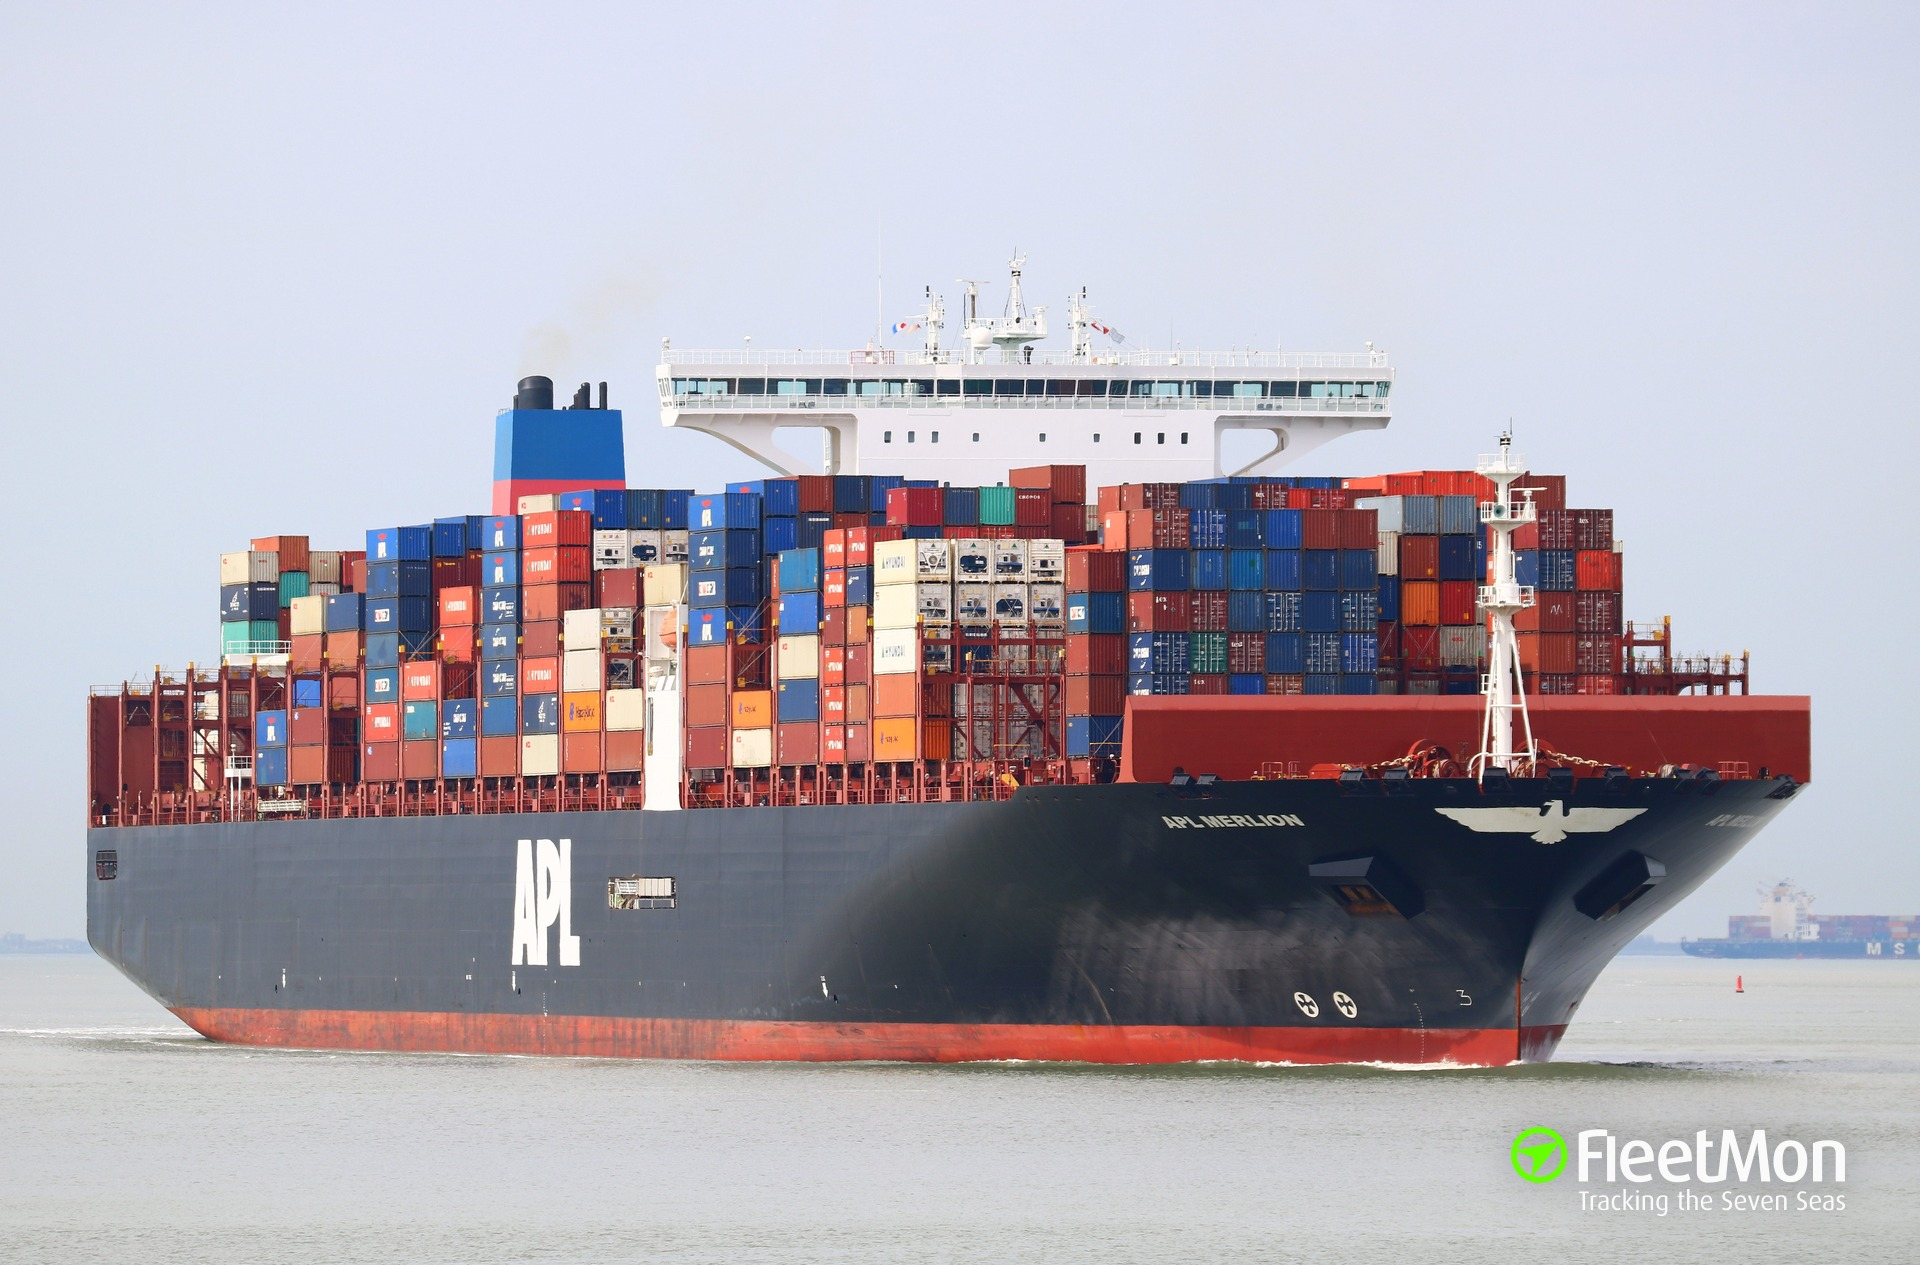 Brand-new APL MERLION first in Hamburg